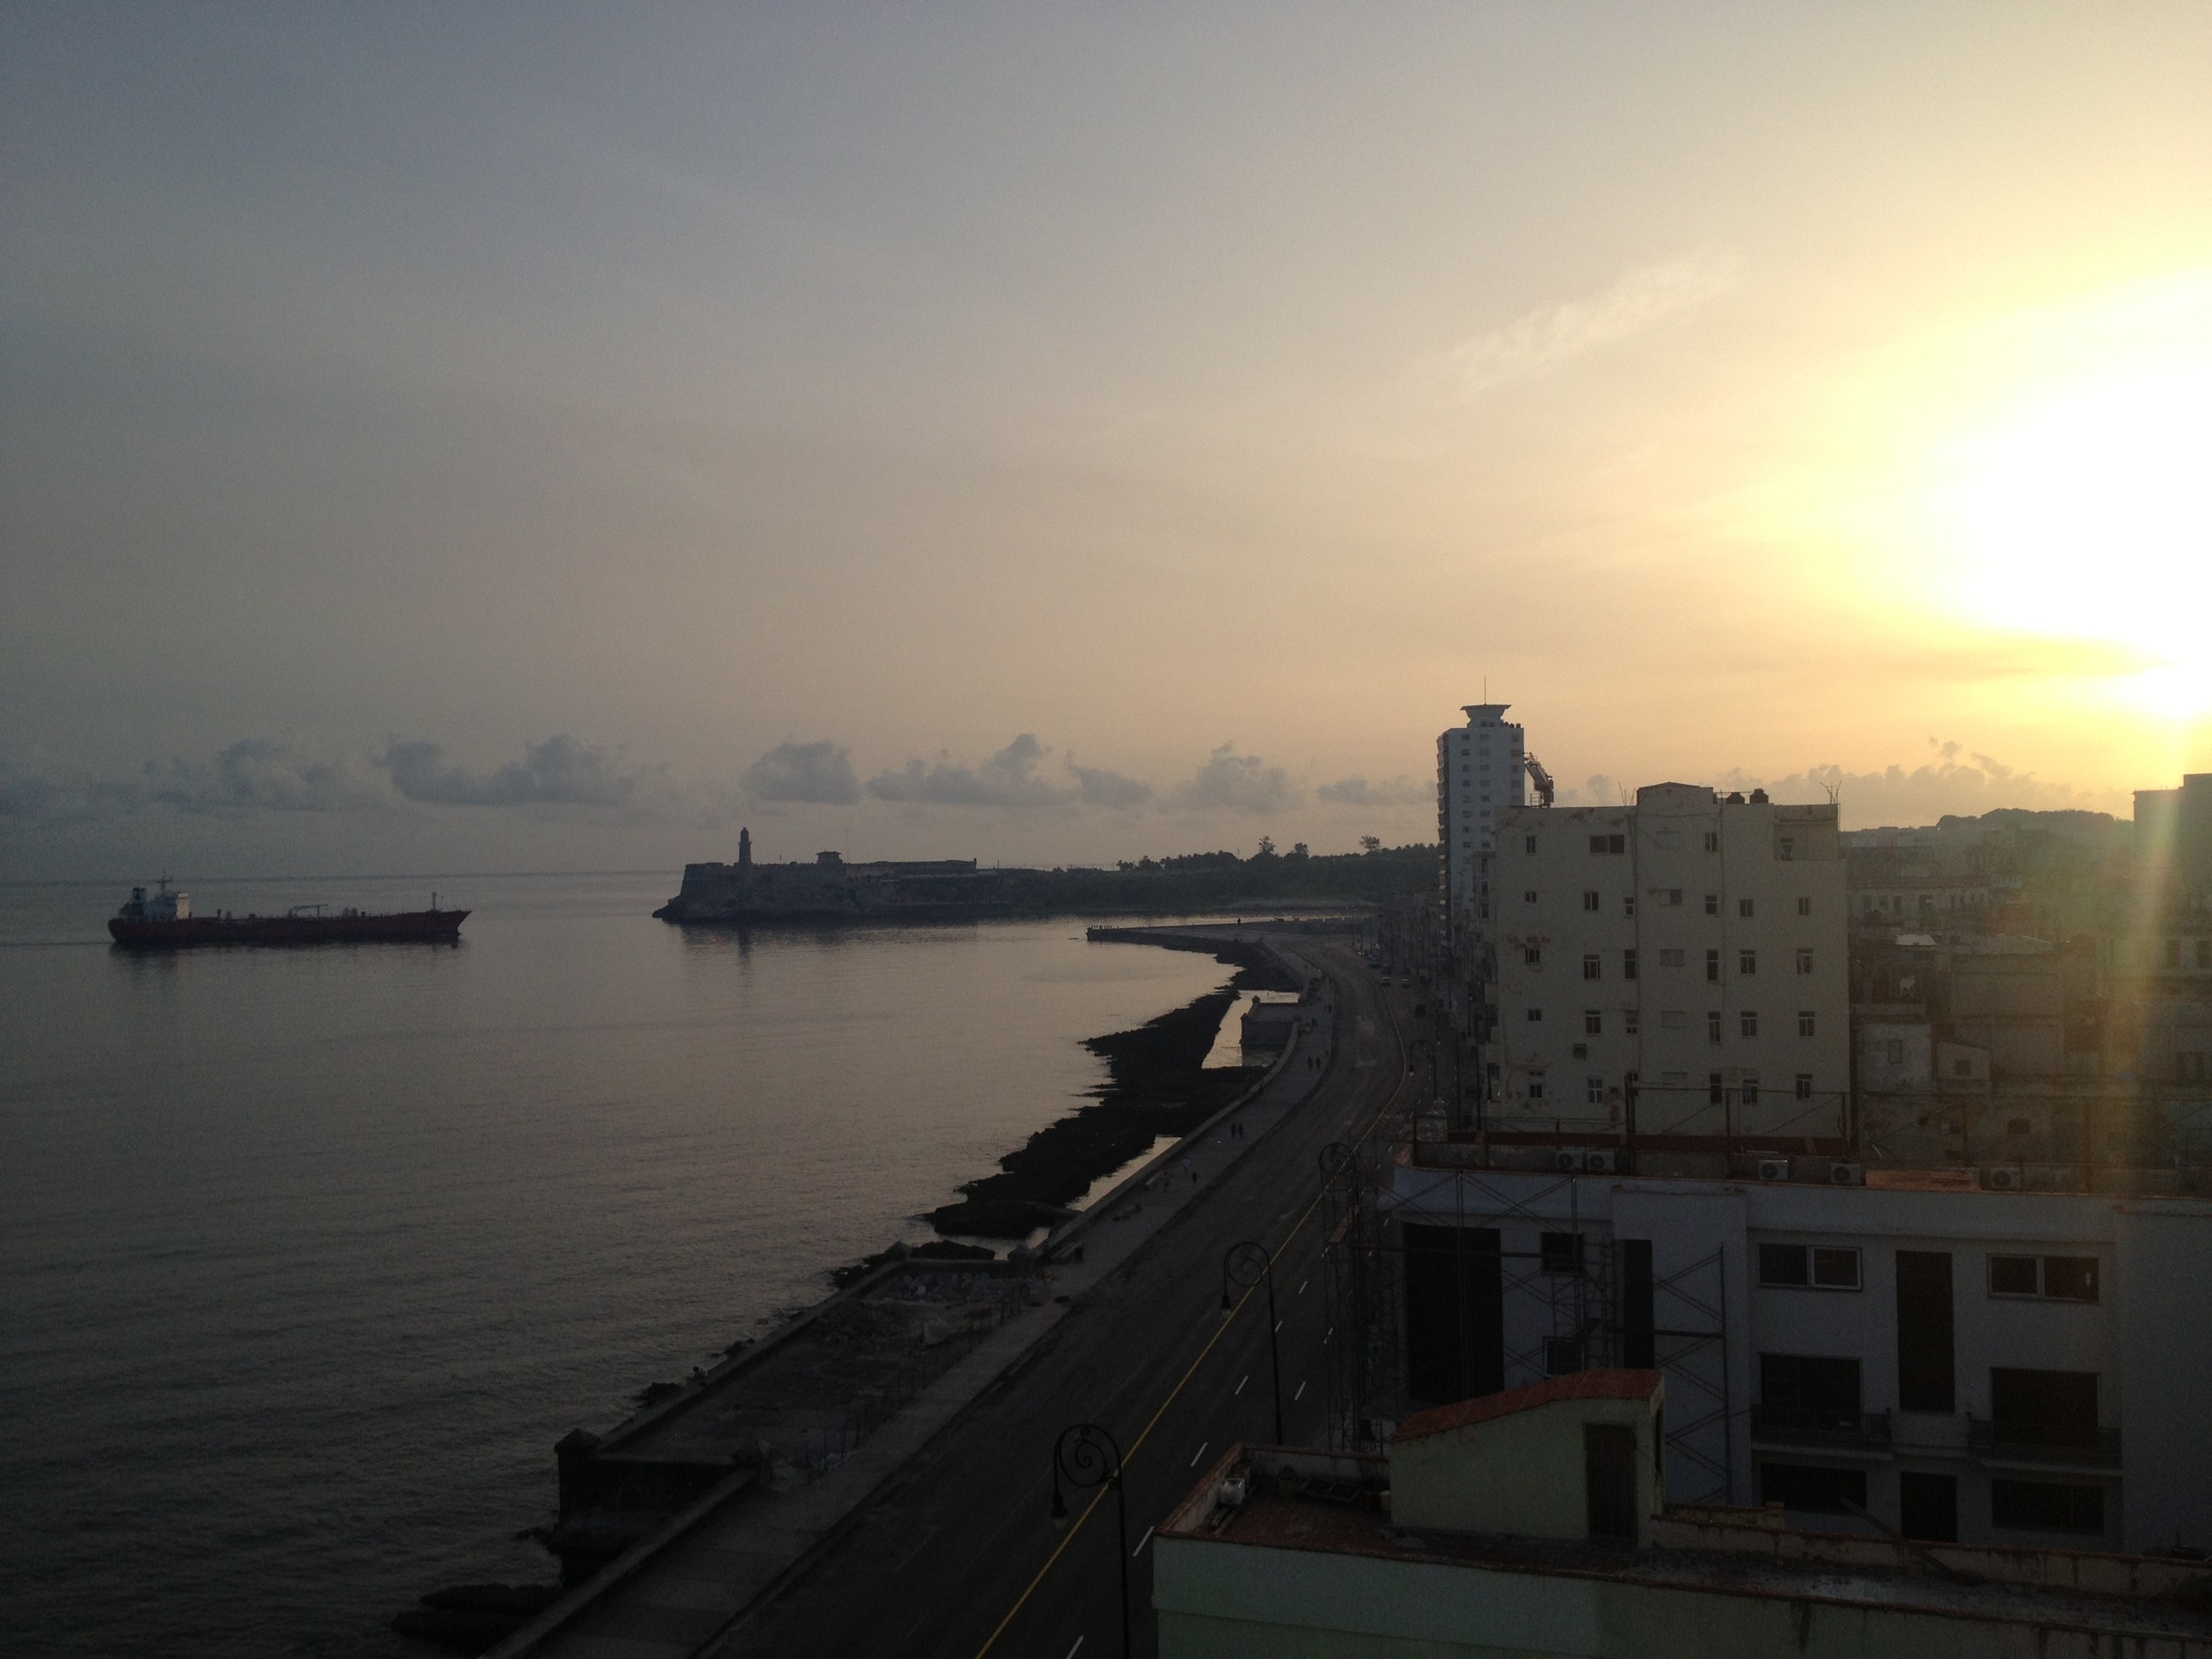 Sunrise, Bay of Havana.